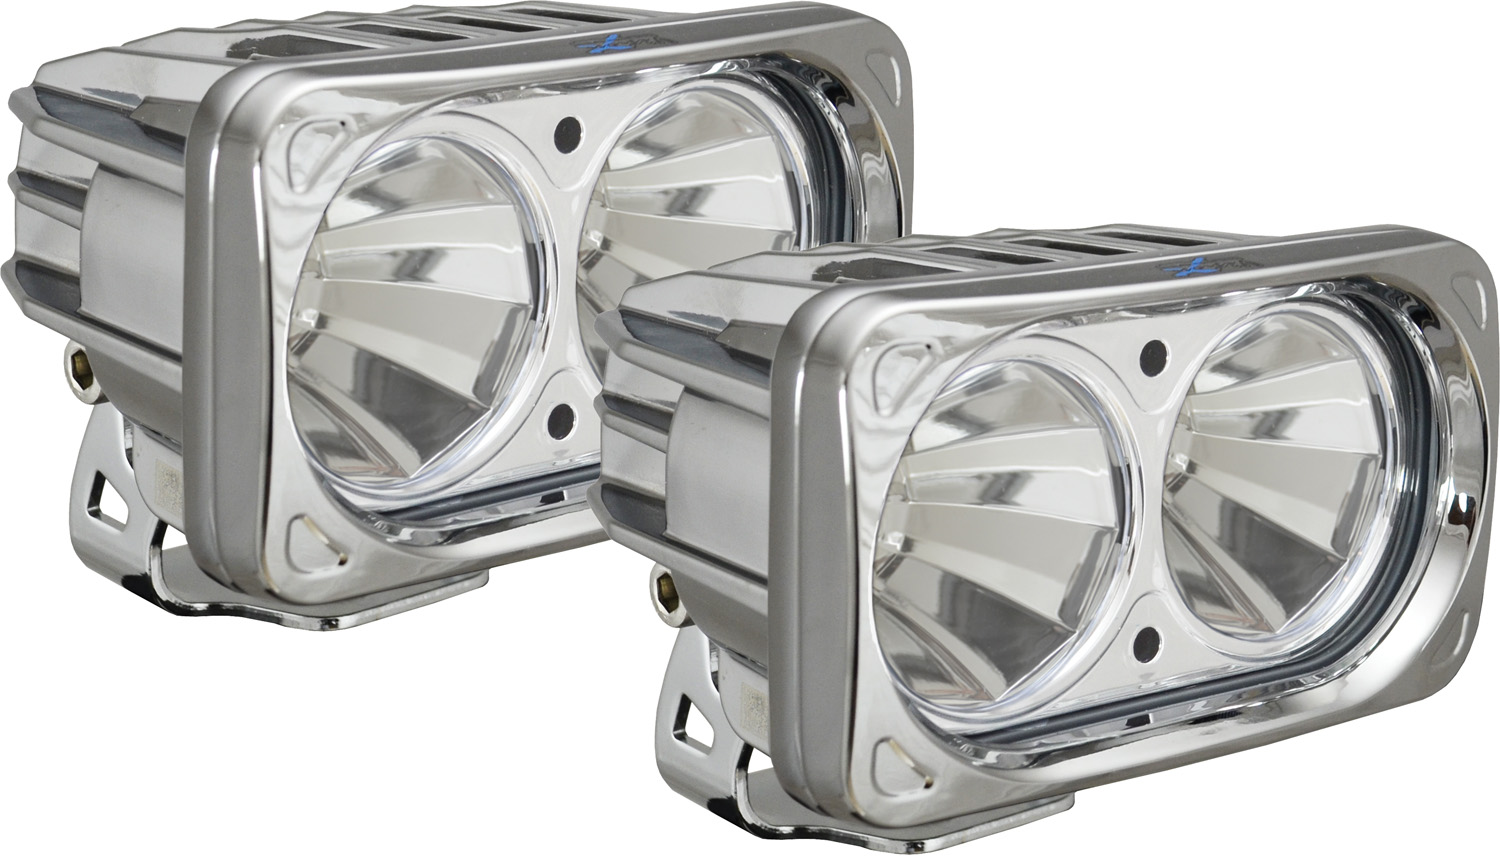 OPTIMUS SQUARE CHROME 2 10W LEDS 60° FLOOD KIT OF 2 LIGHTS